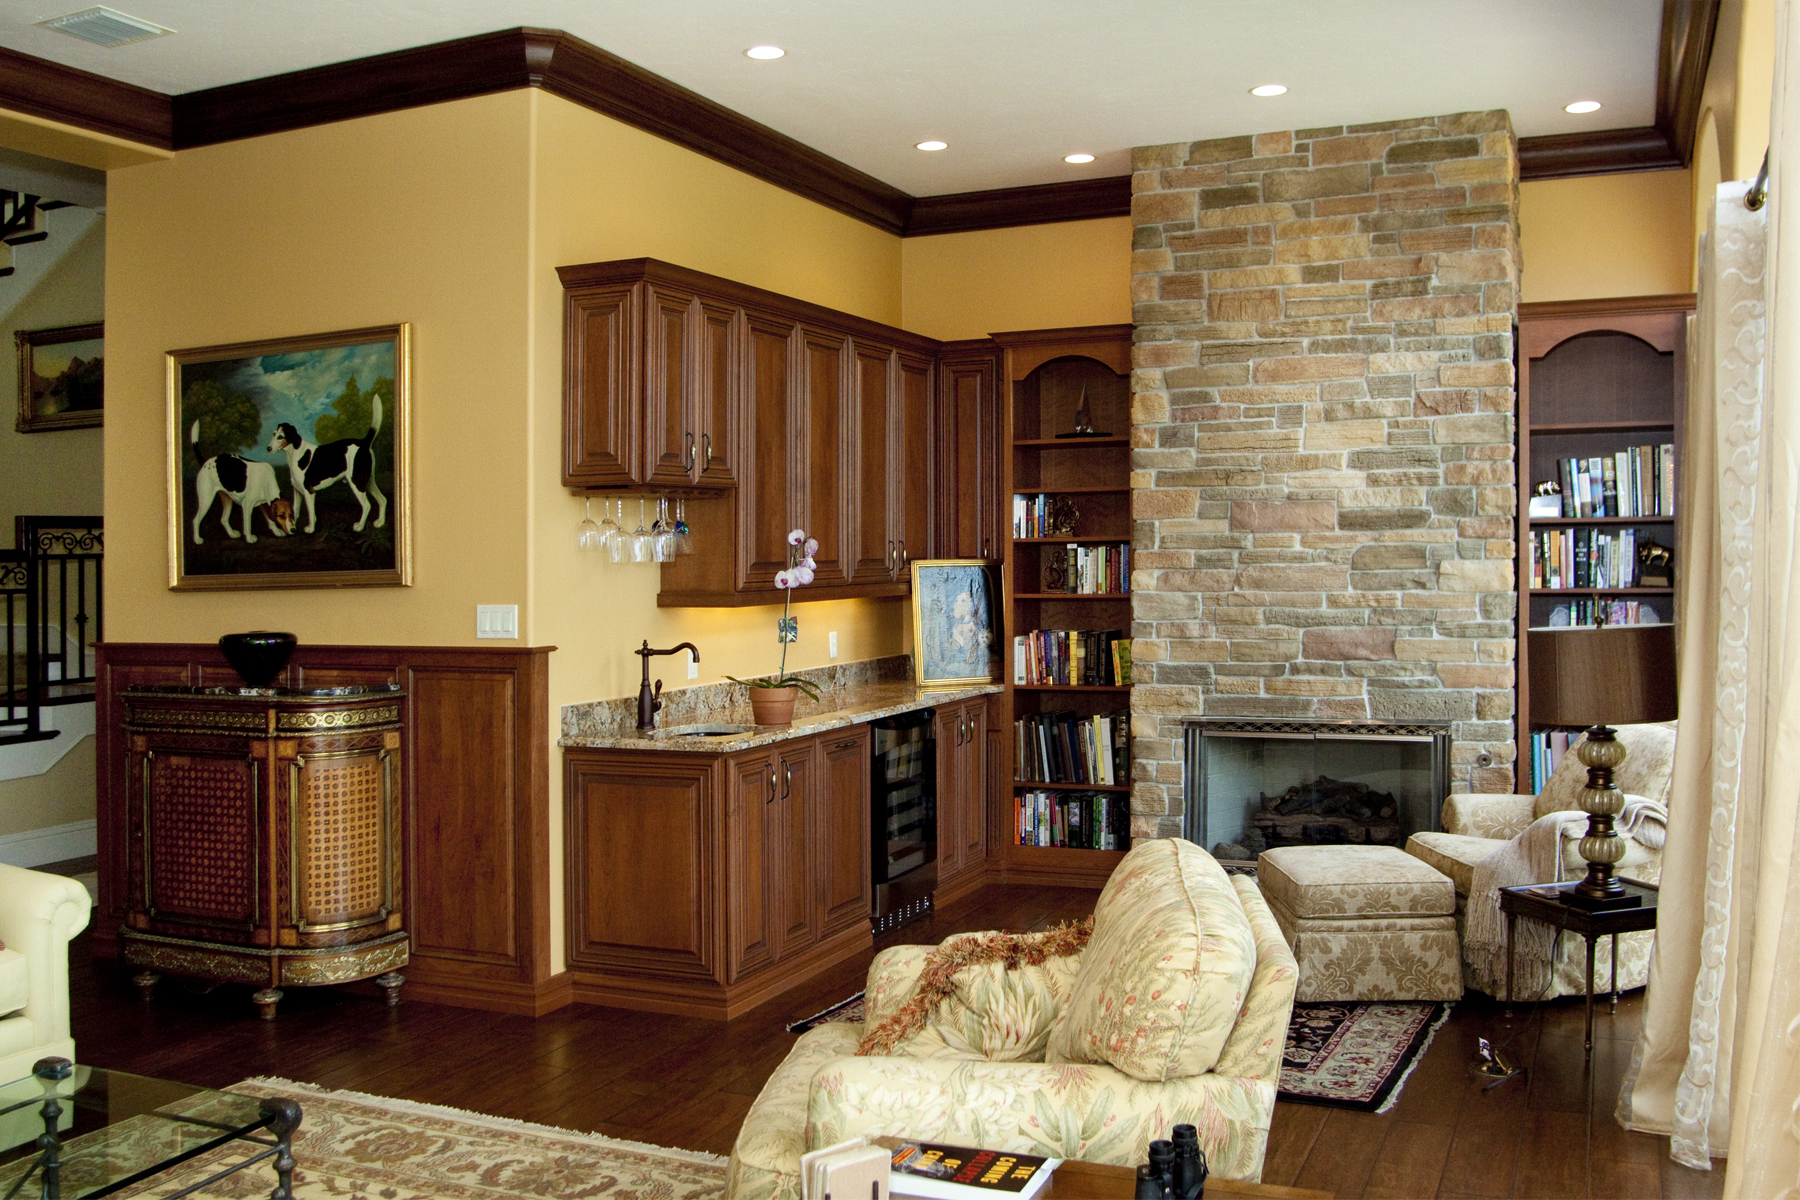 General Contractor Carriage House Custom Homes Interiors Inc